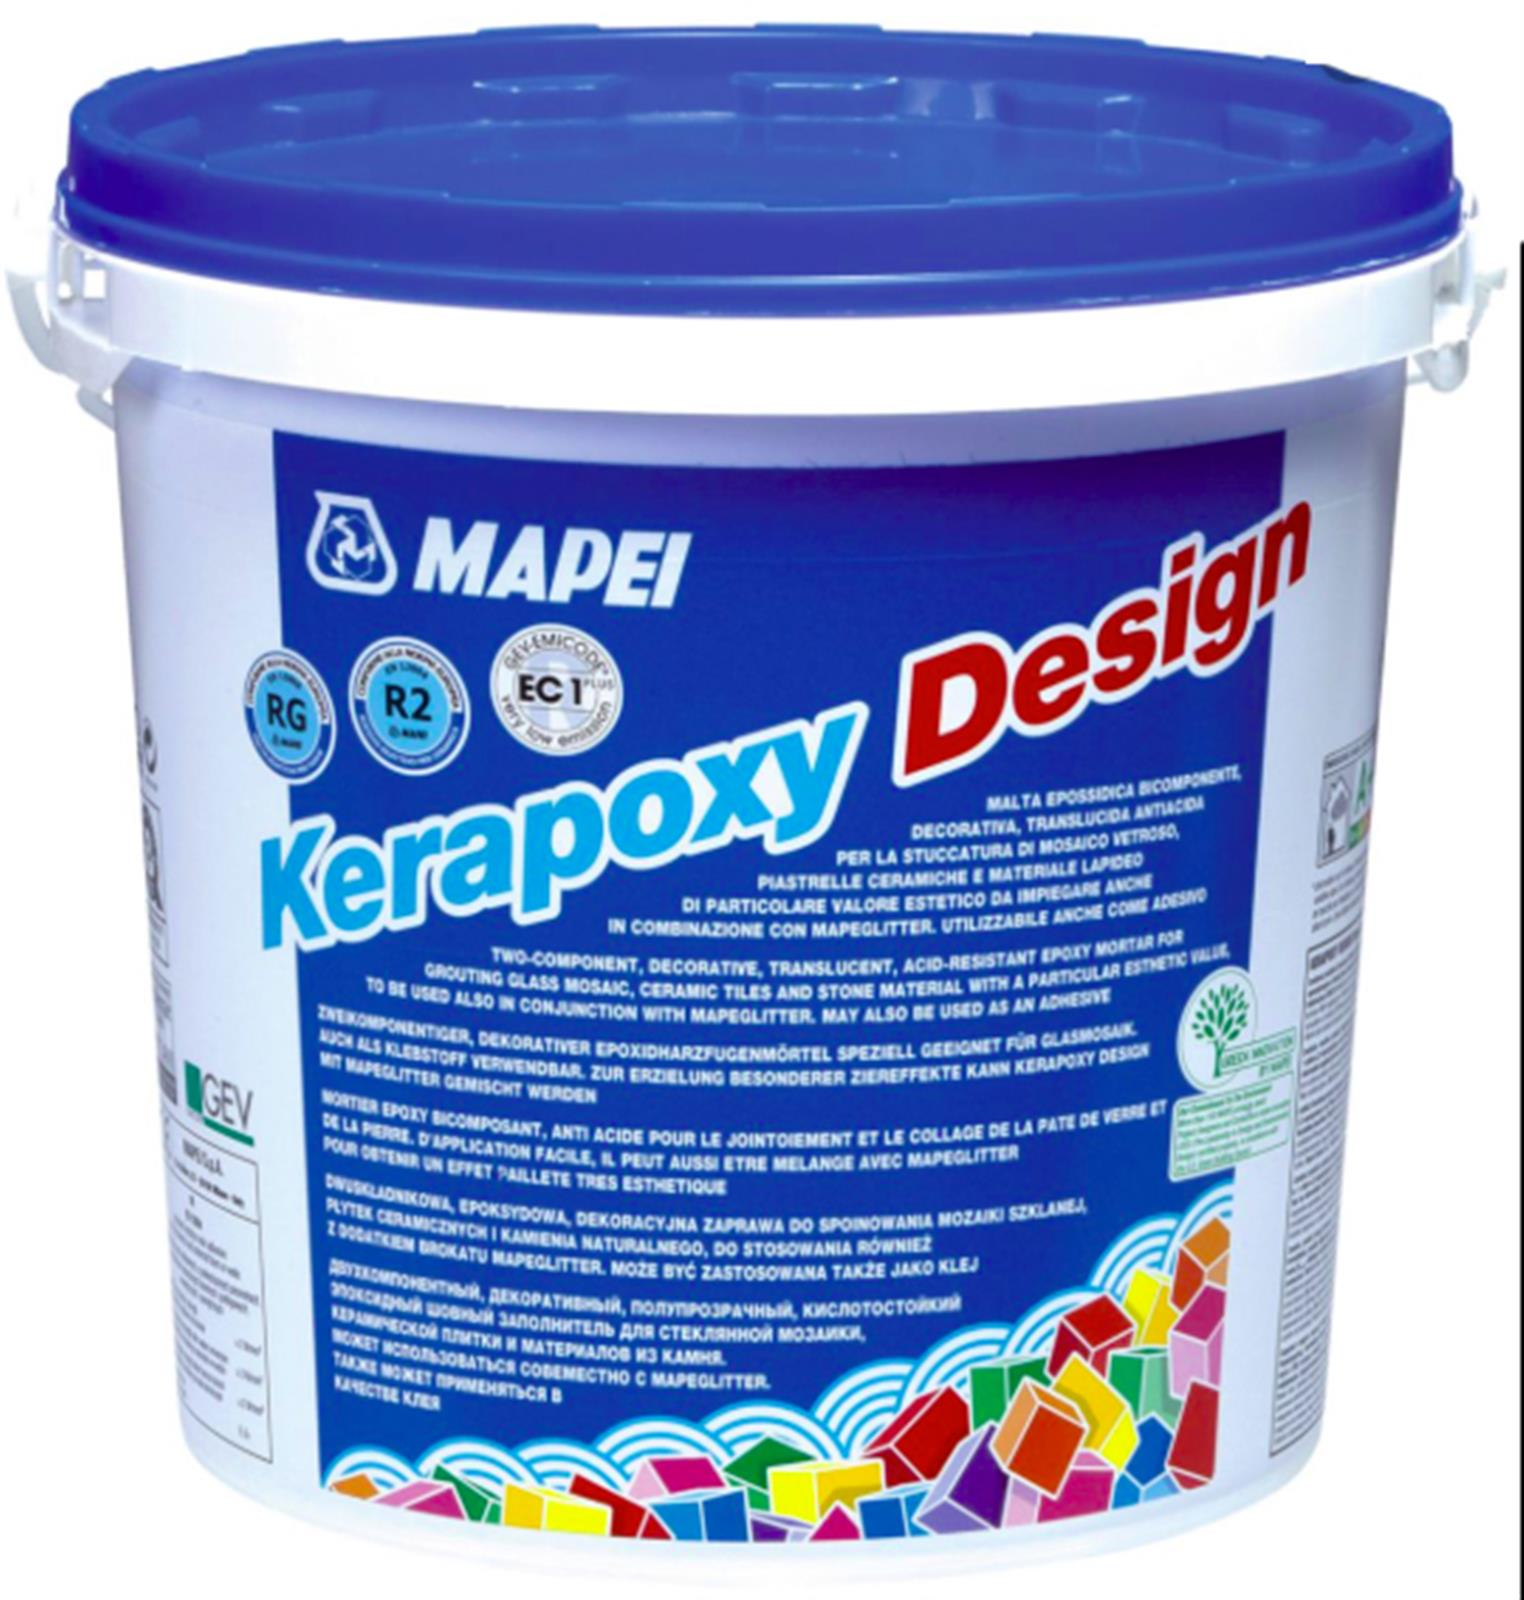 Mortier colle pour carrelage kit kerapoxy design mapei for Colle souple pour carrelage